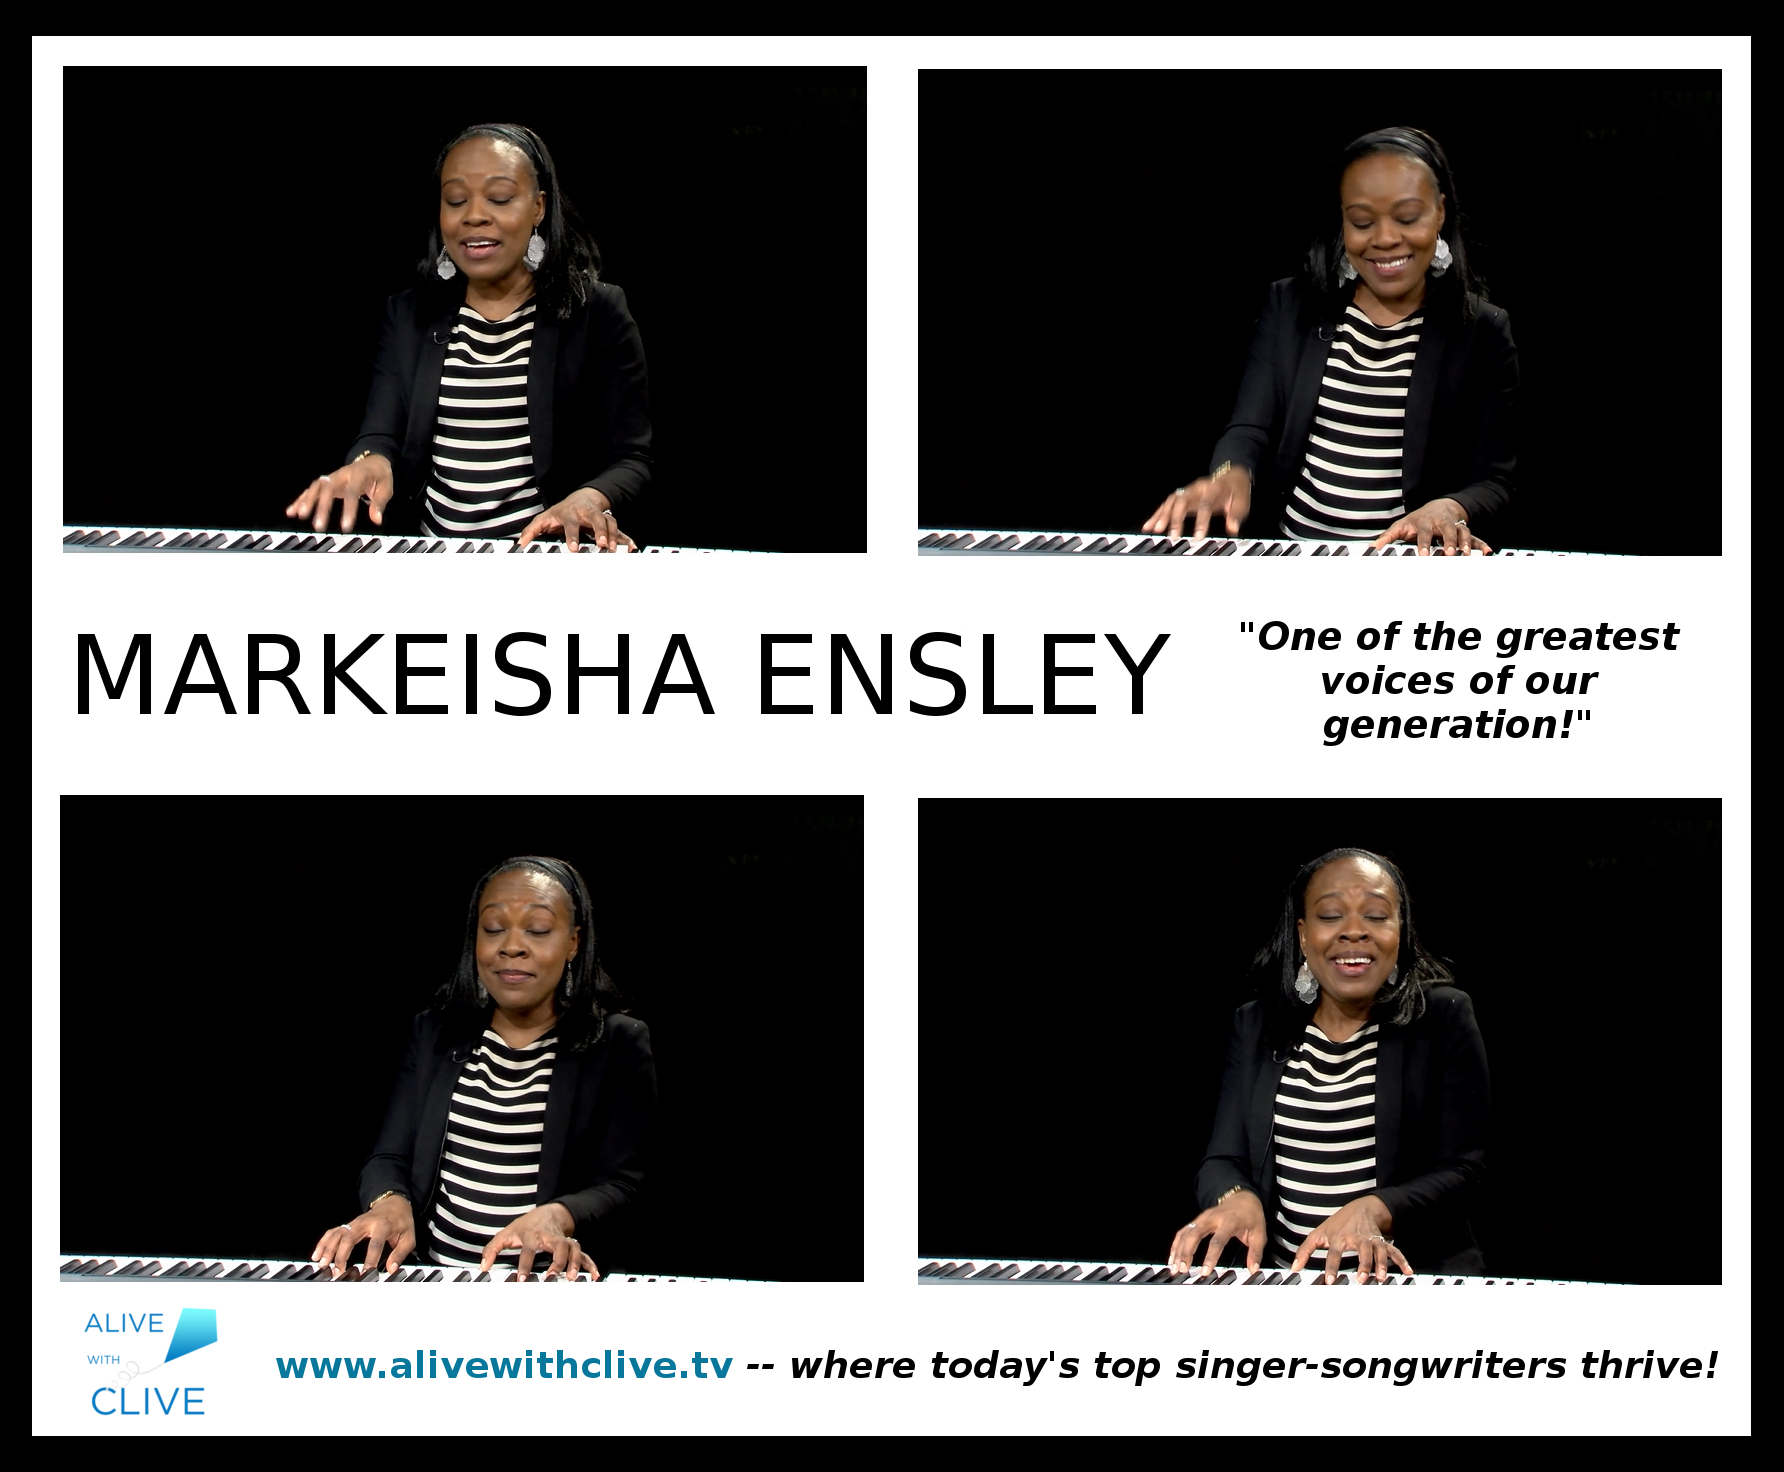 Markeisha Ensley in her 4th of 4 Shows on Alive with Clive